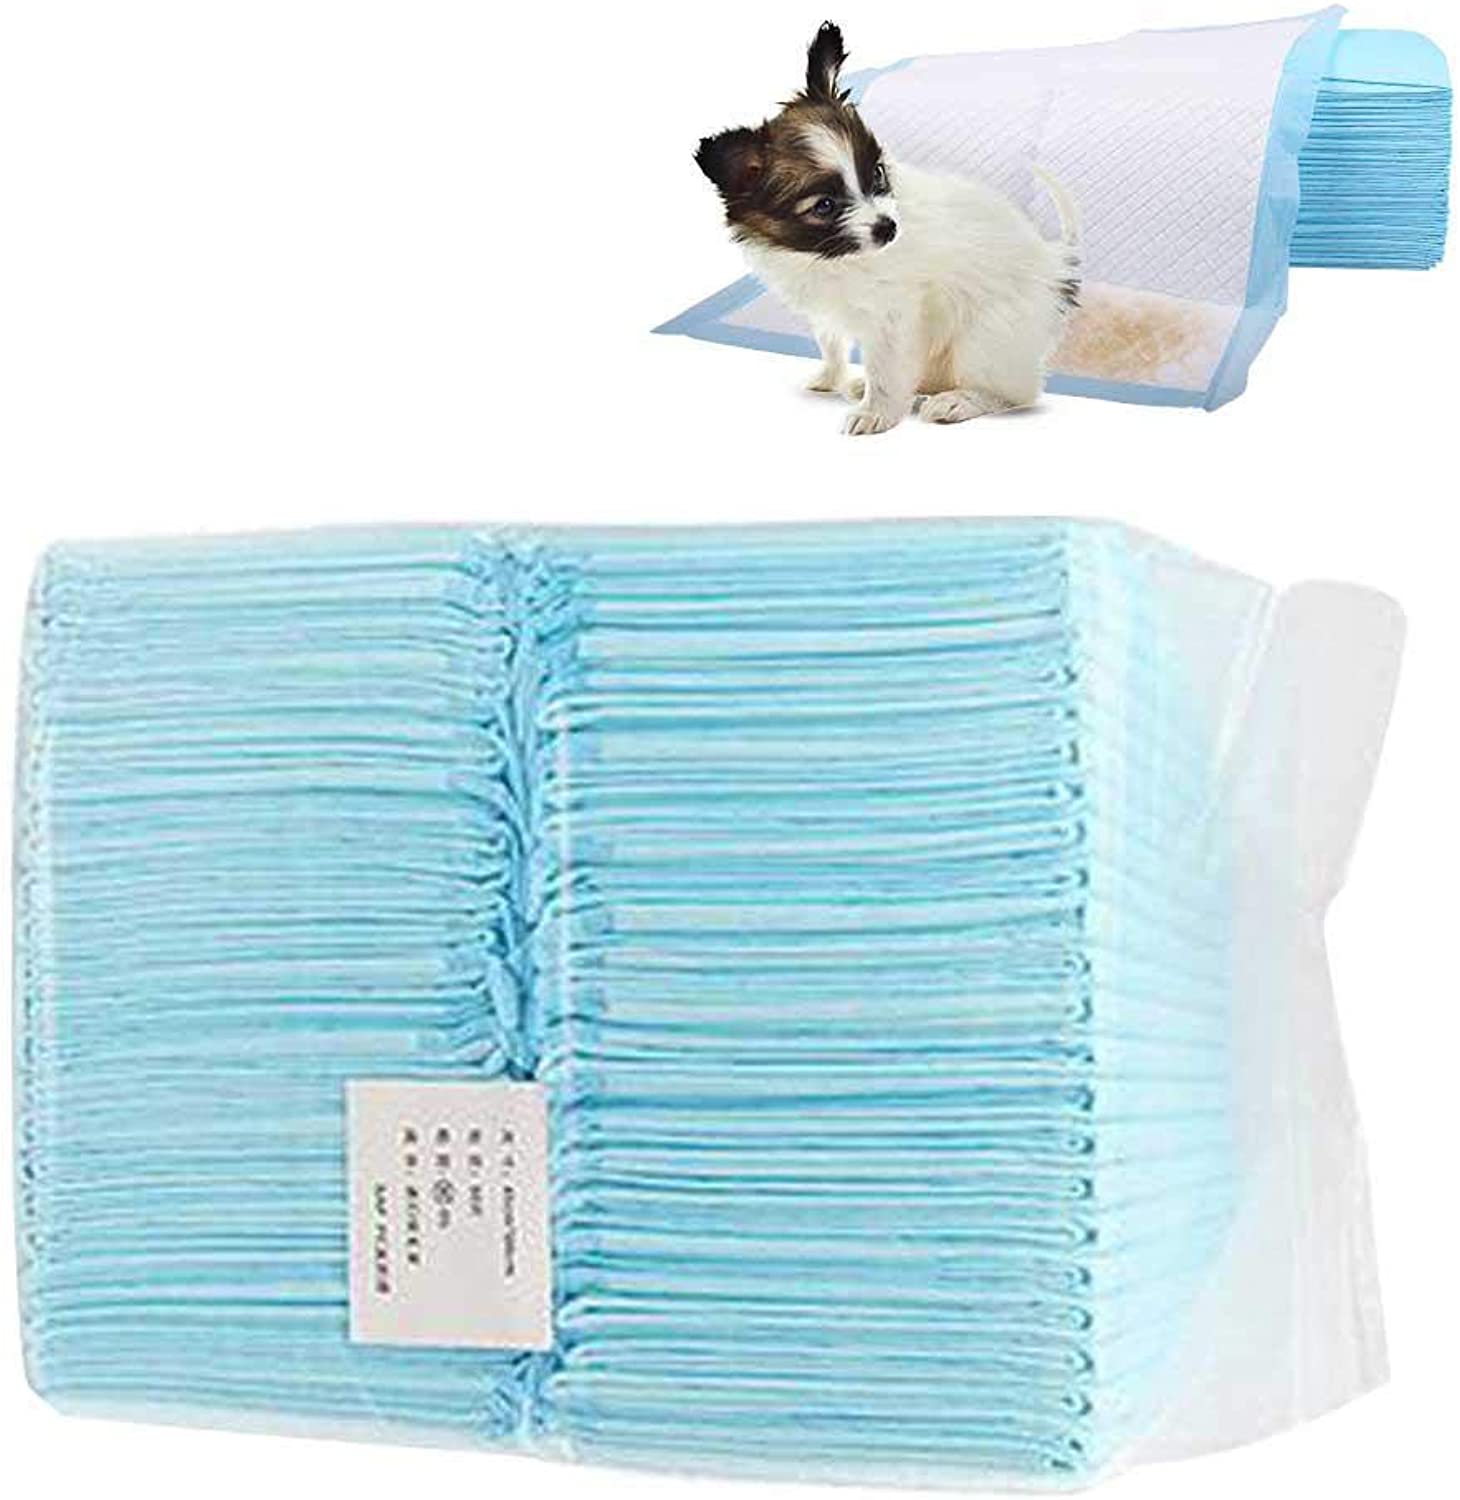 Puppy Pads, AUOKER Ultra Absorbent Pet Training and Puppy Pee Pads for Dogs, Native Wood Pulp Dog Potty Puppy Training Pad, Eliminate Odor, Leak Proof  24  18 , 50 Count